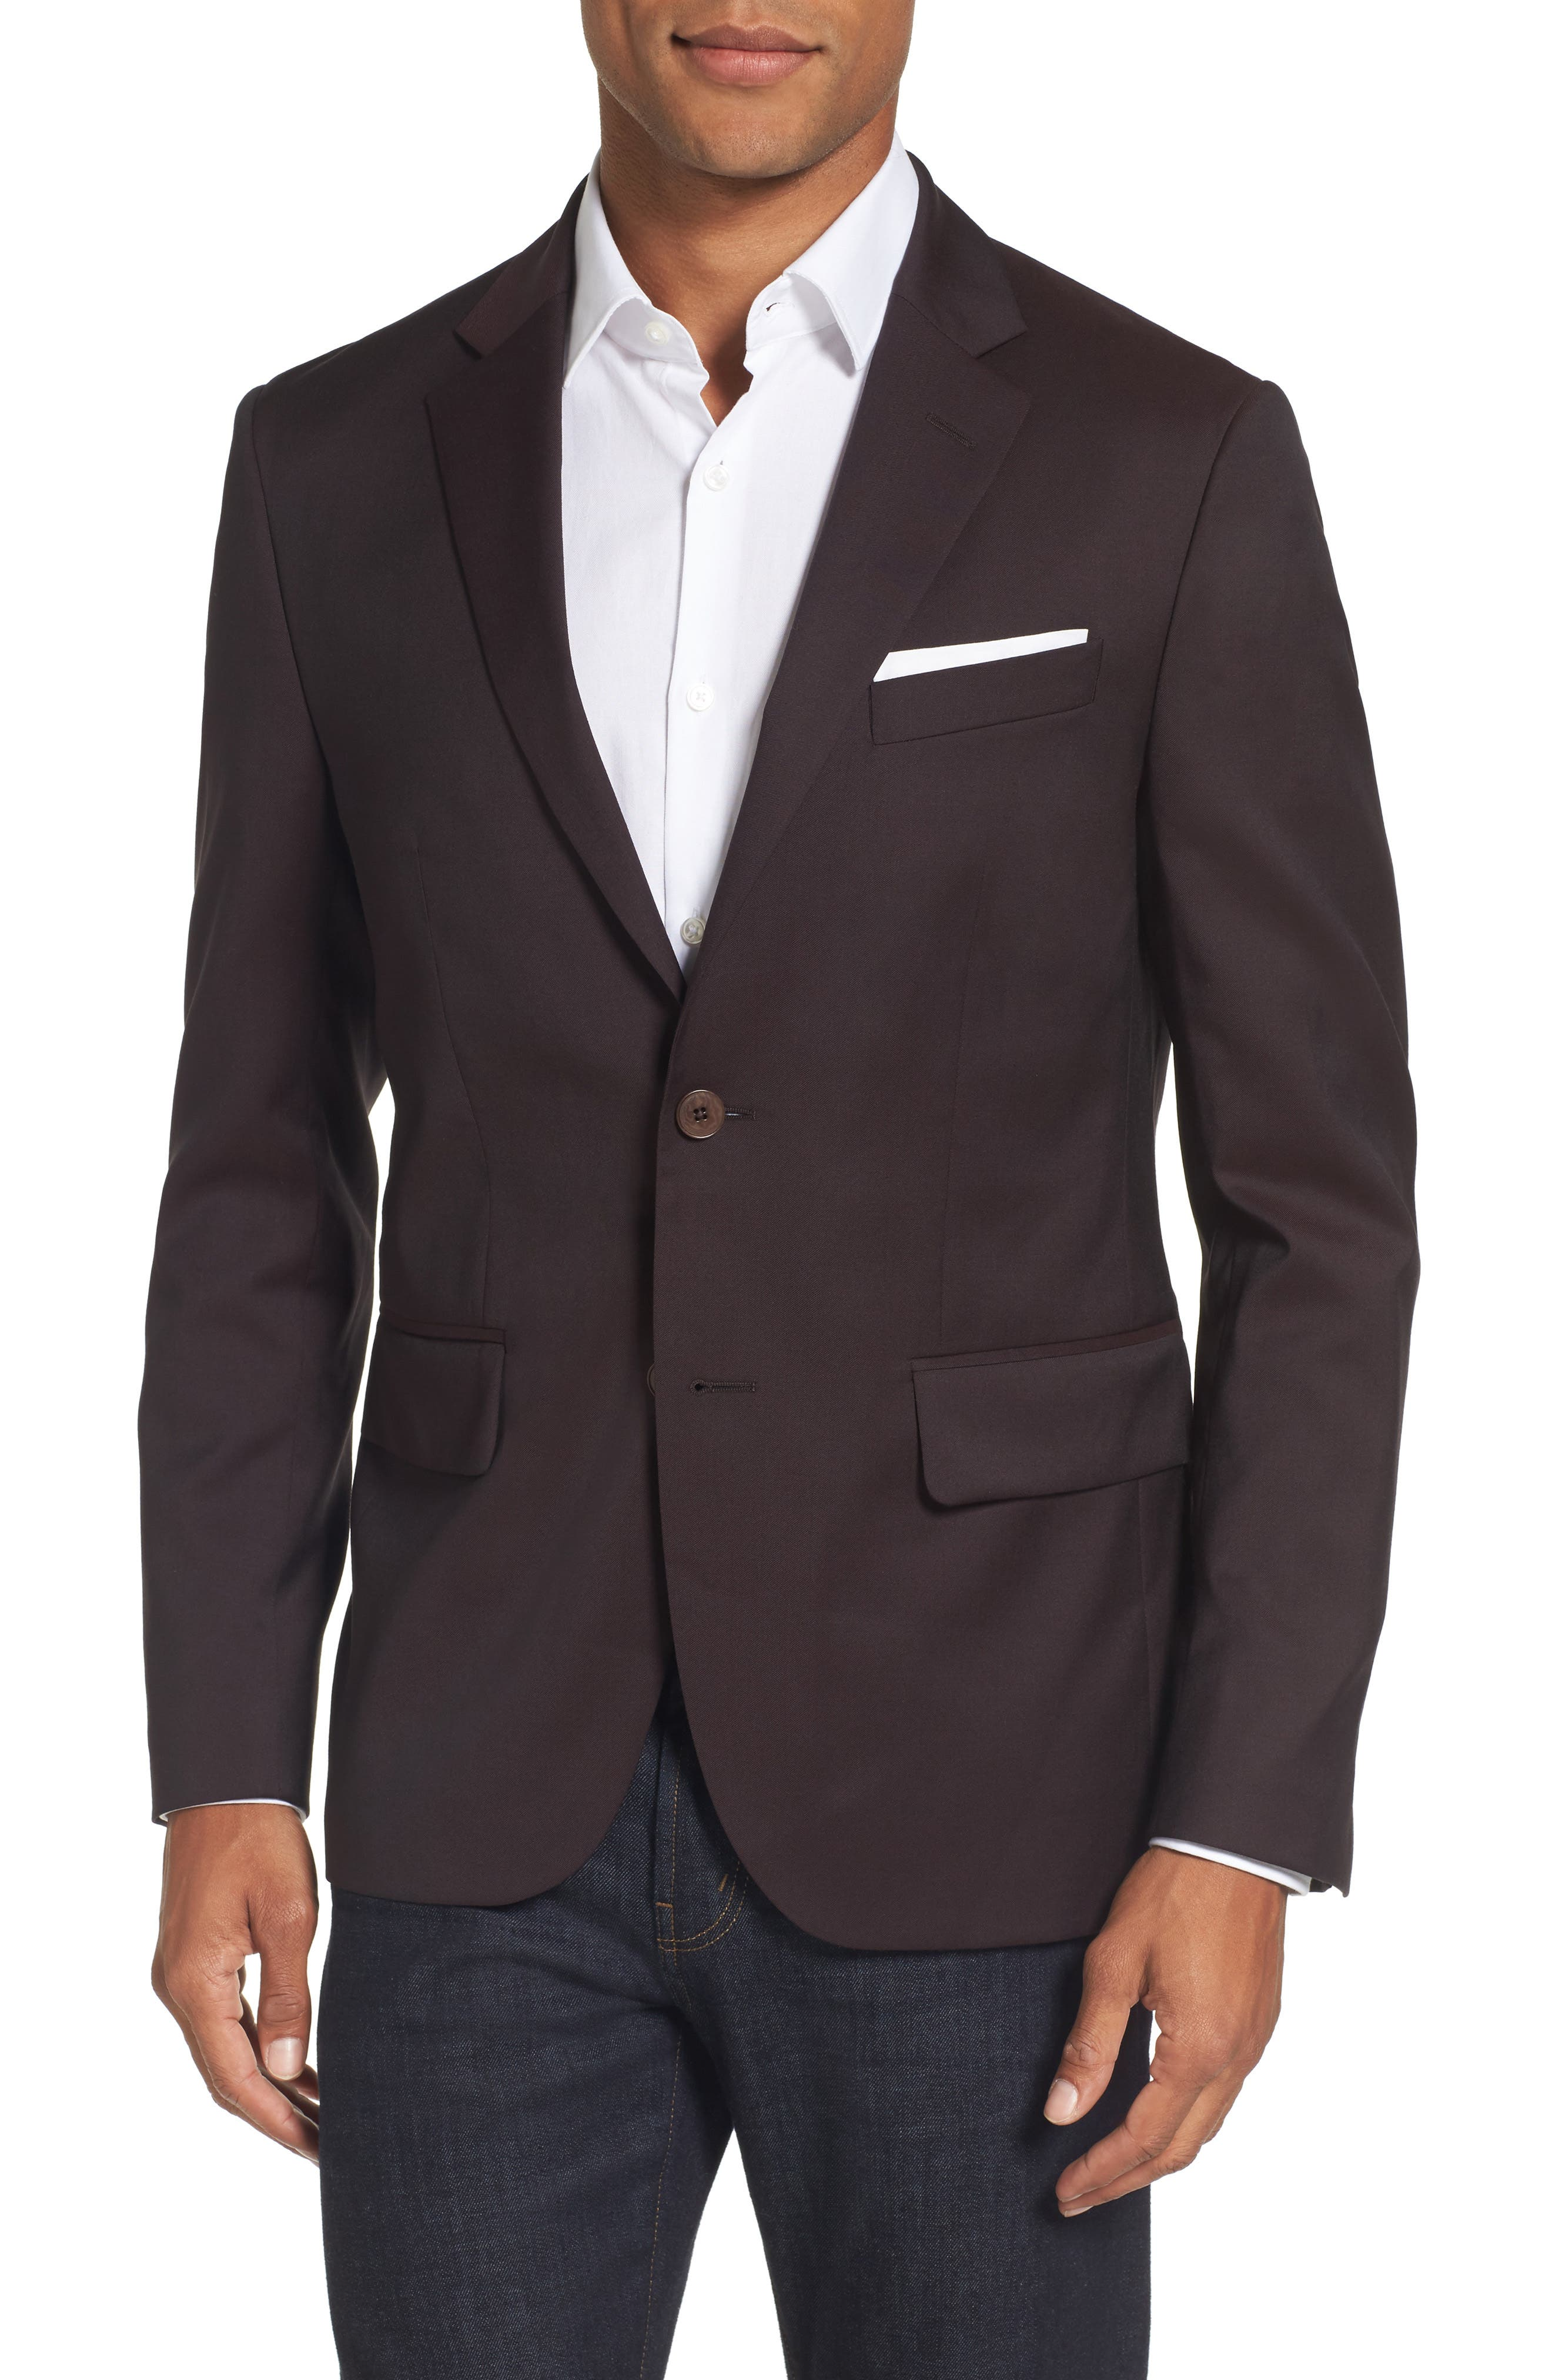 Gant Travel Suit Jacket